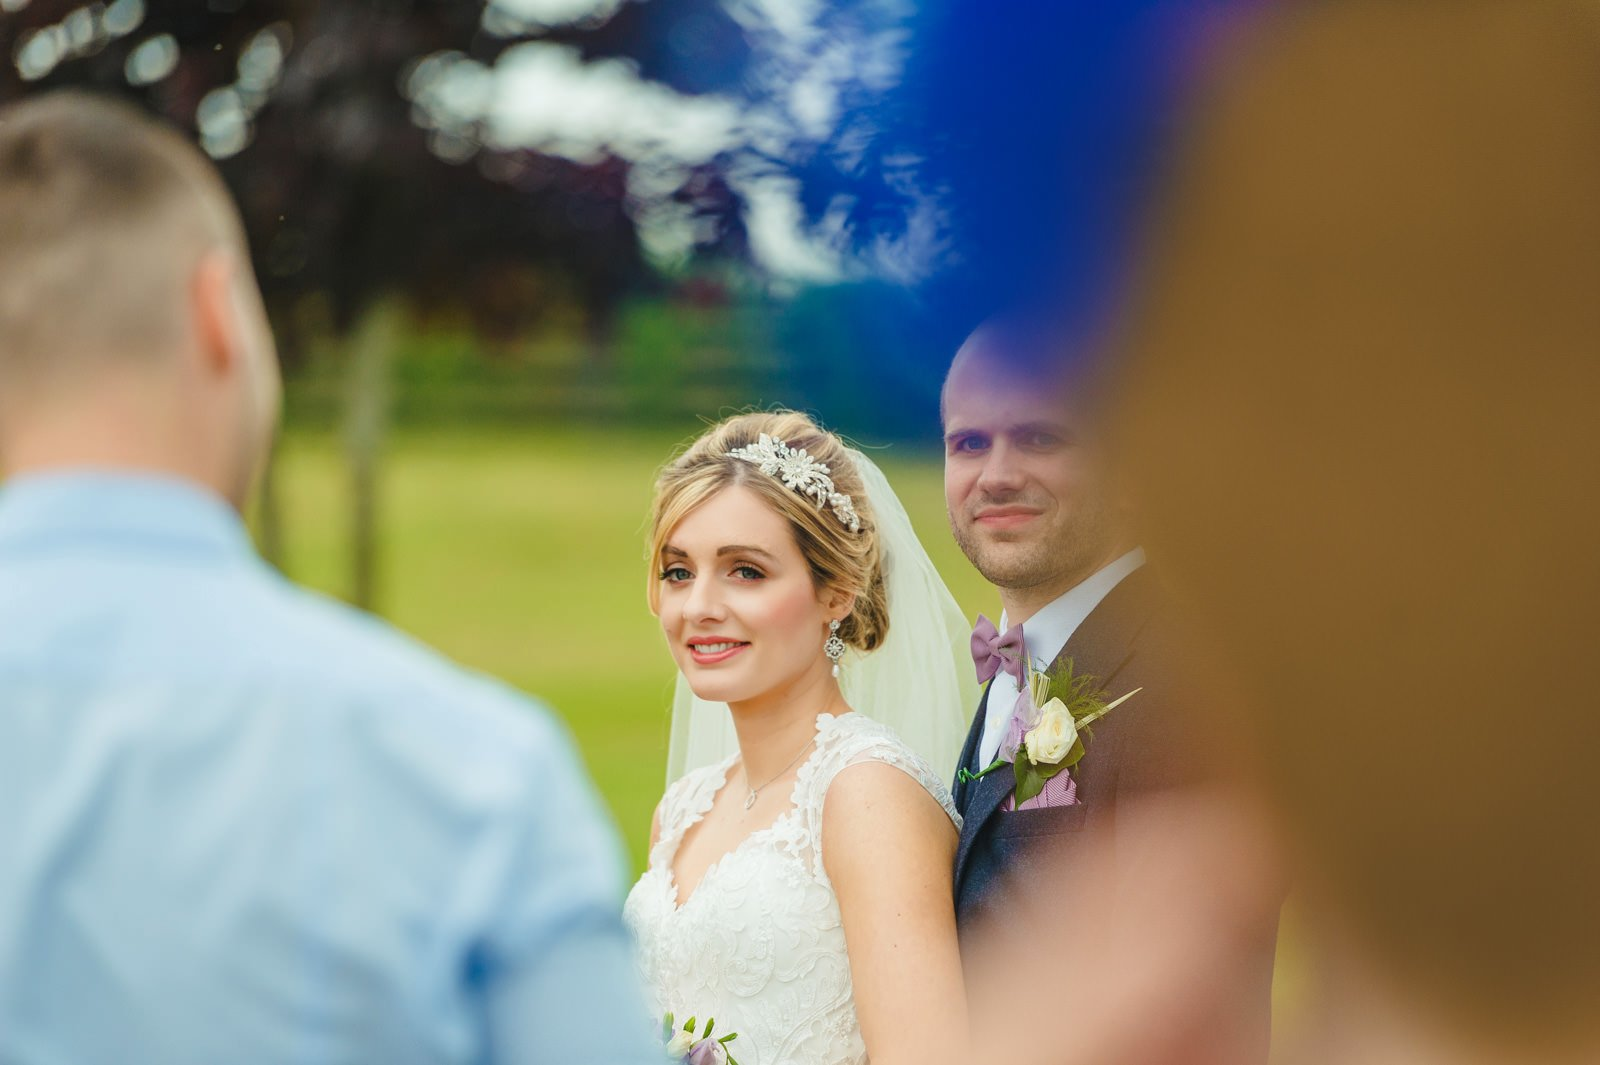 Millers Of Netley wedding, Dorrington, Shrewsbury | Emma + Ben 43